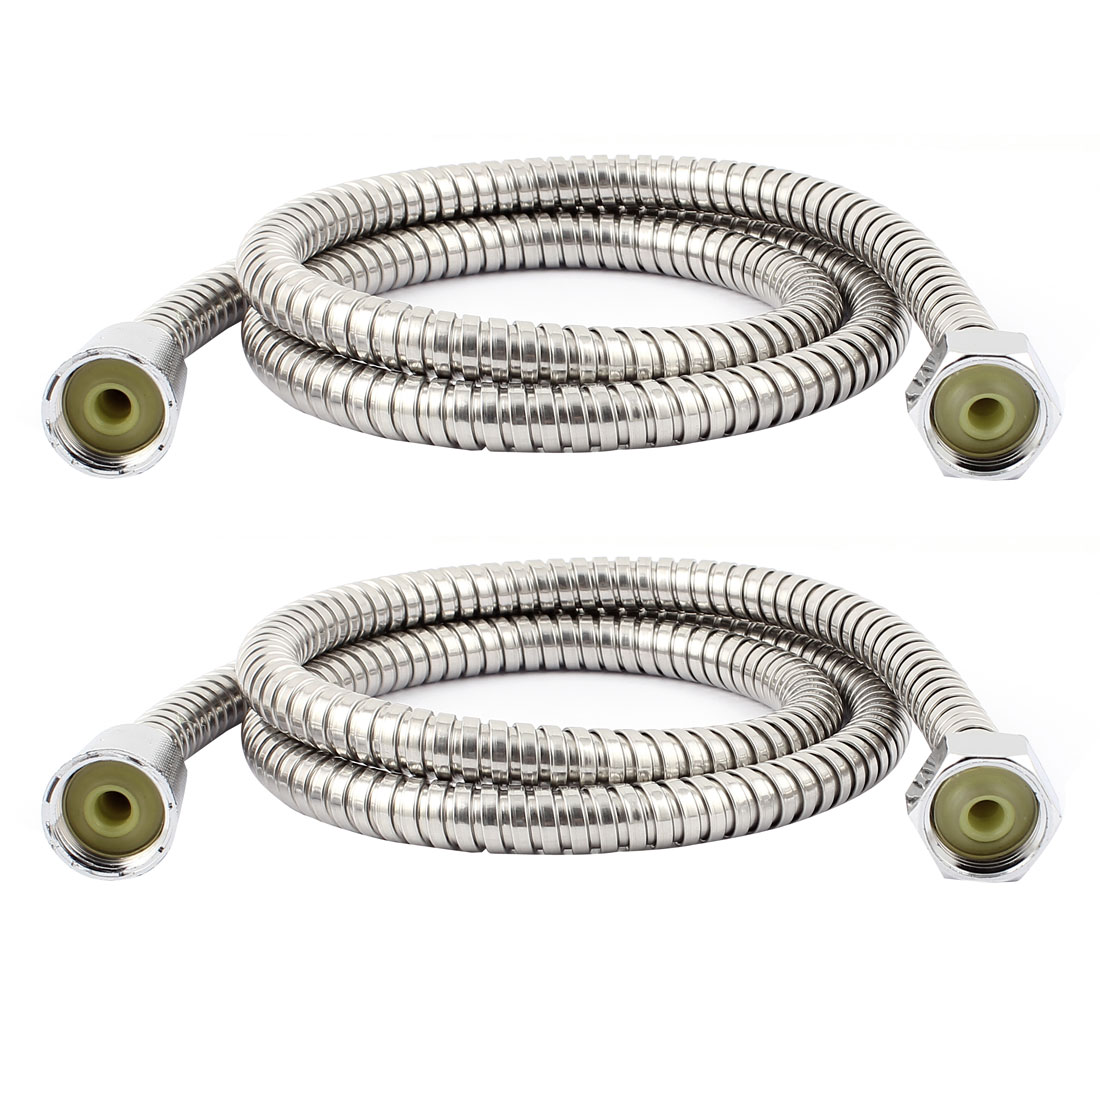 2 Pcs Stainless Steel Bathroom Shower Water Heater Flexible Hose Pipe 120cm 4ft Long